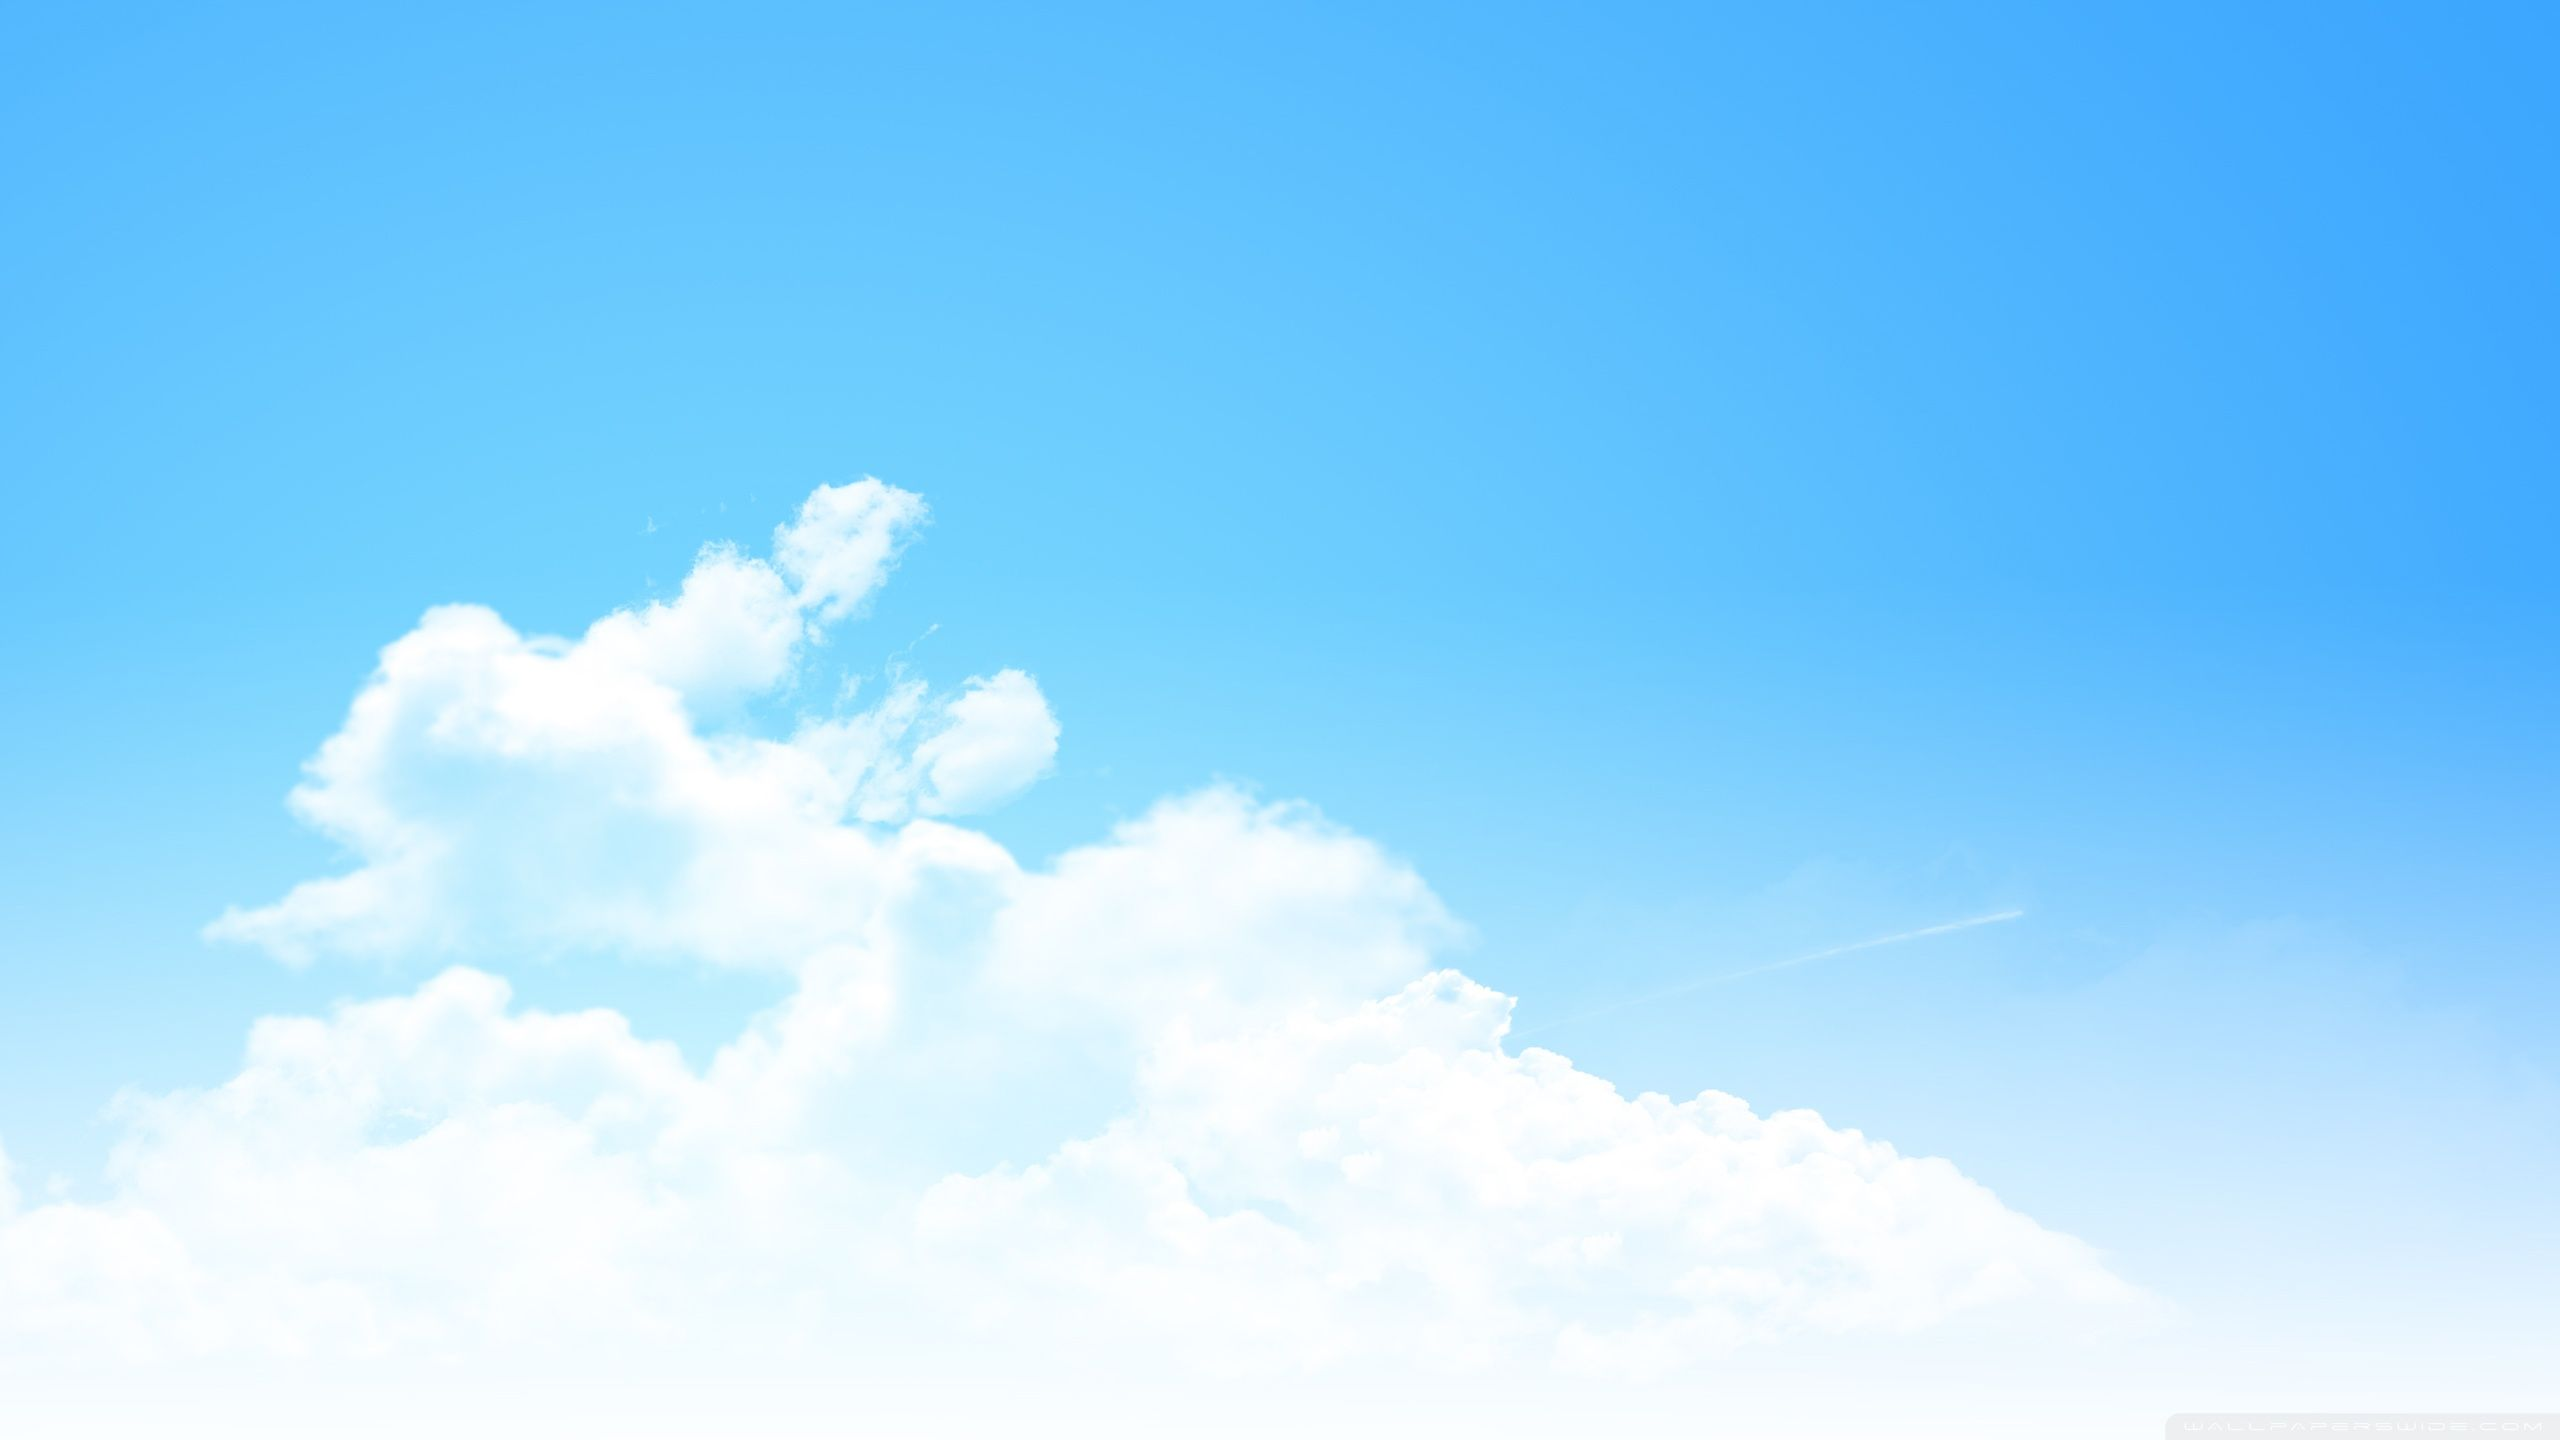 Clear Sky Wallpapers Top Free Clear Sky Backgrounds Wallpaperaccess